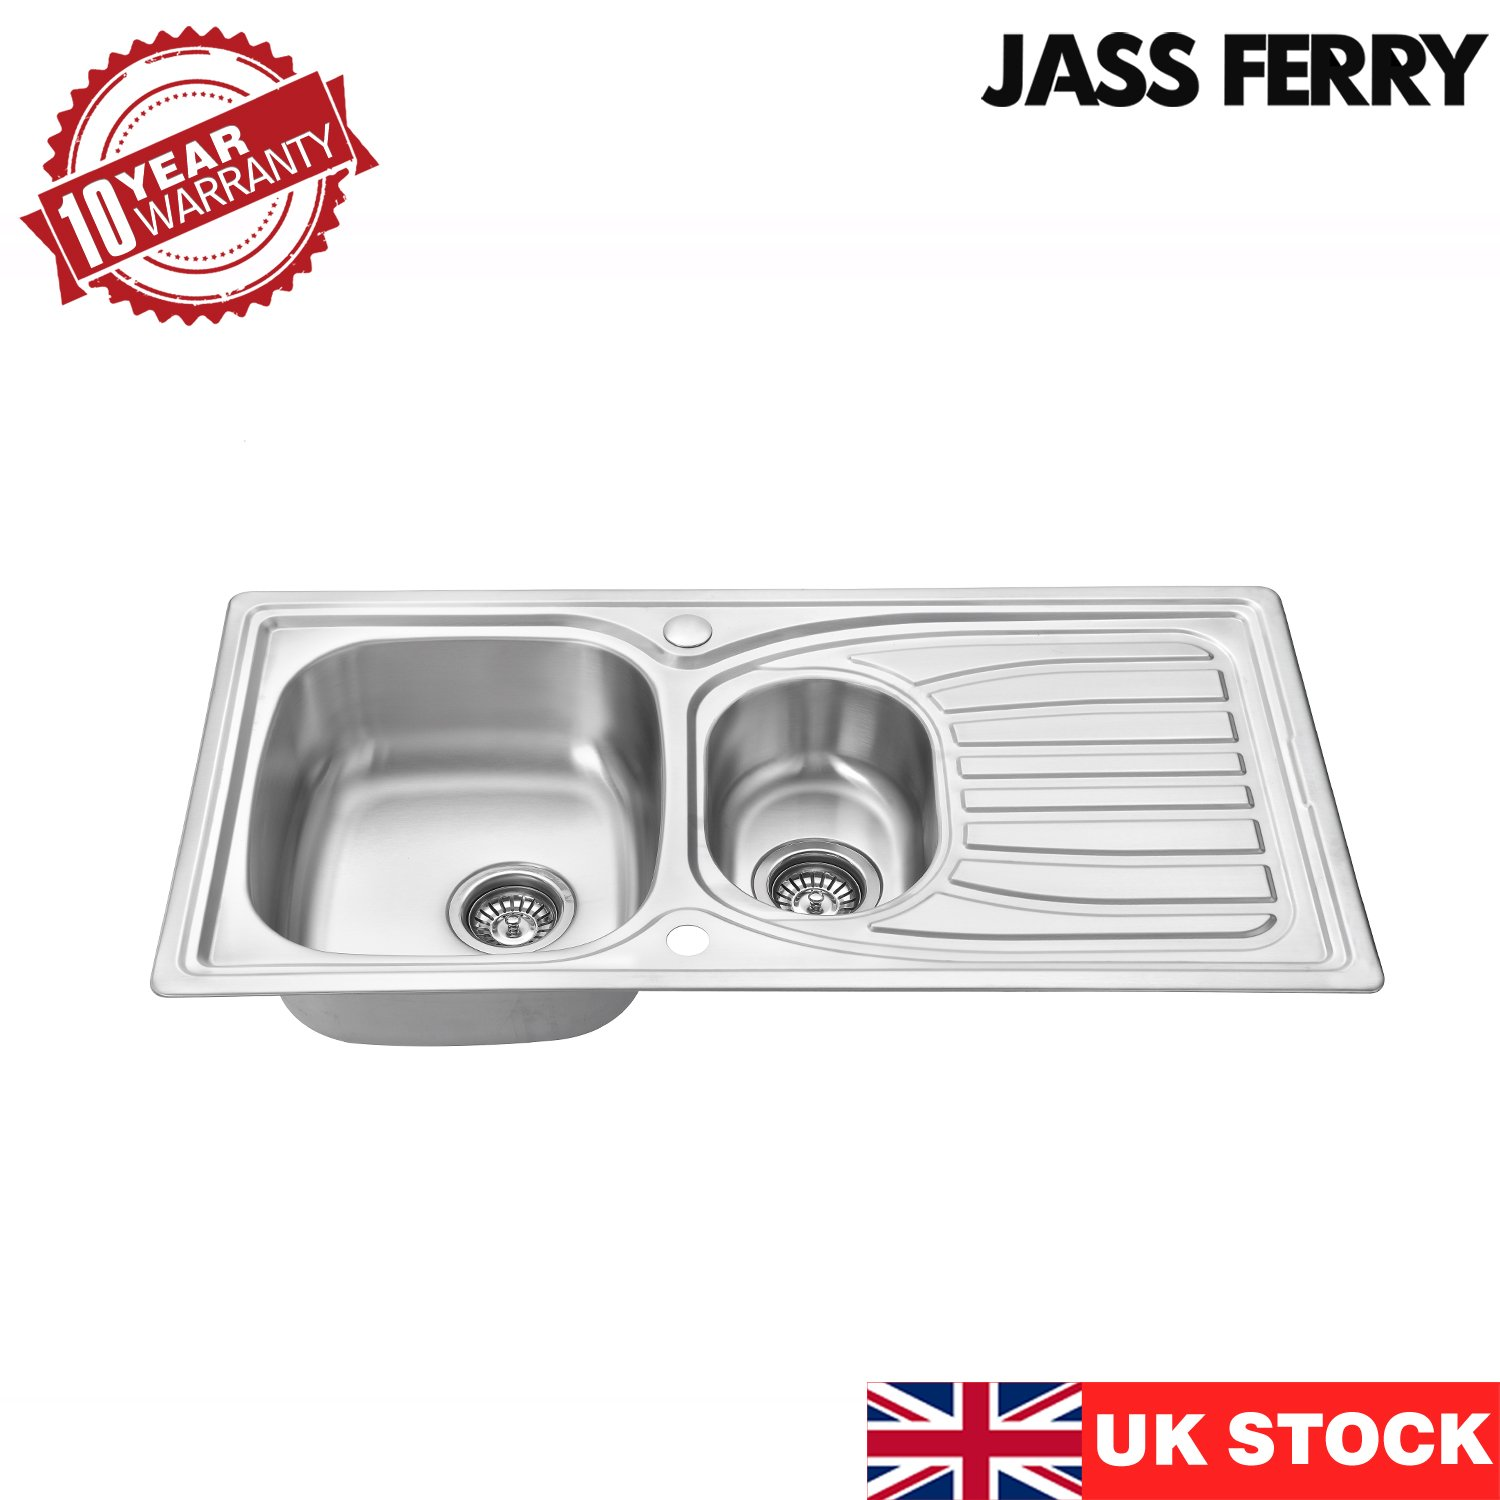 Jass Ferry 980 X 510 Mm Stainless Steel Kitchen Sink Inset 1 5 One Half Bowl Reversible Drainer With Waste Pipes Clips 10 Year Guarantee Buy Online In El Salvador At Elsalvador Desertcart Com Productid 81892573